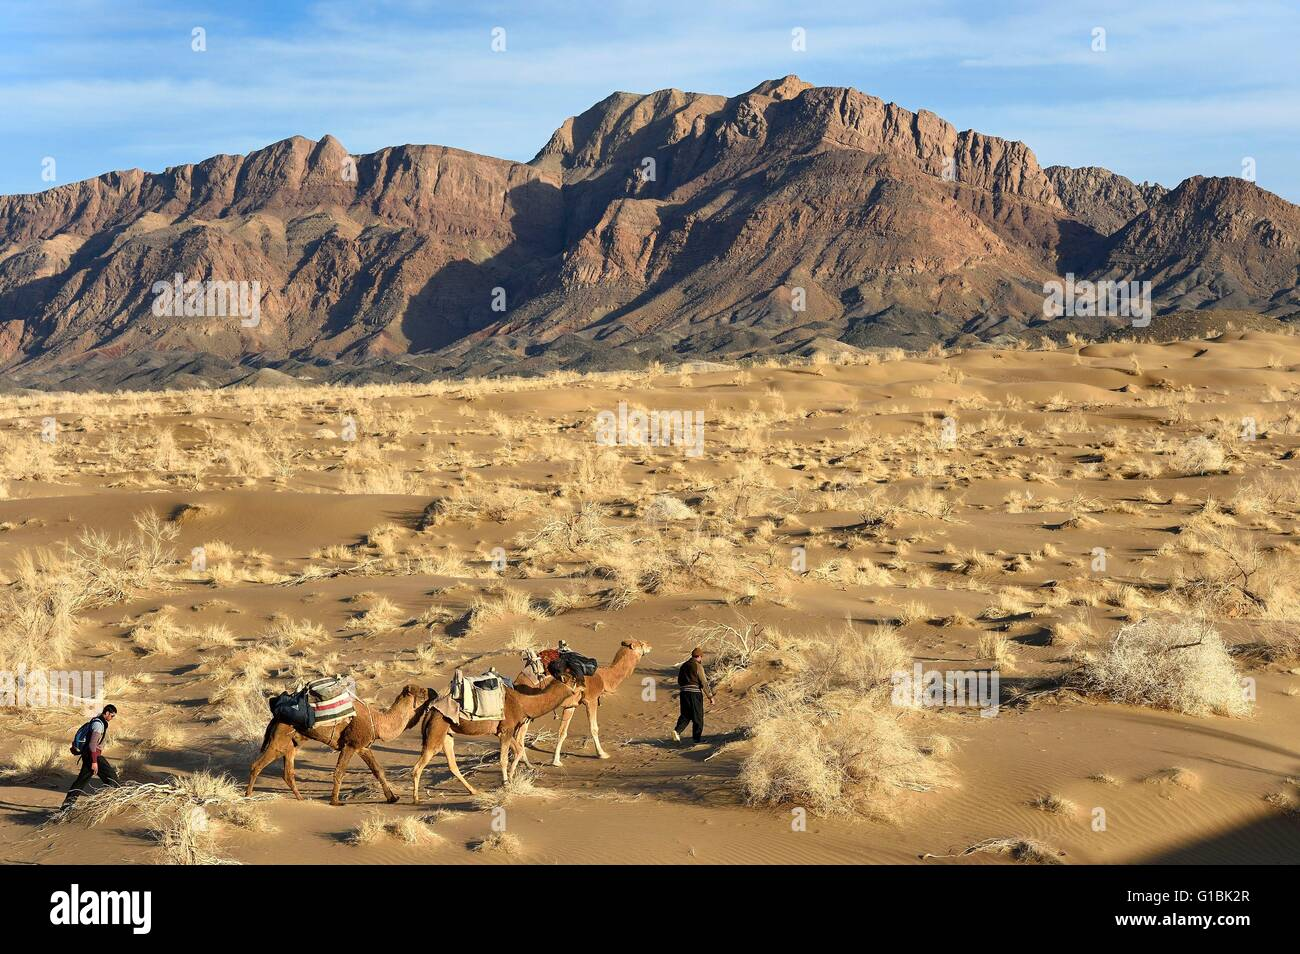 Iran, Isfahan province, Dasht-e Kavir desert, Mesr in Khur and Biabanak County, camel train in a camel trek at the - Stock Image